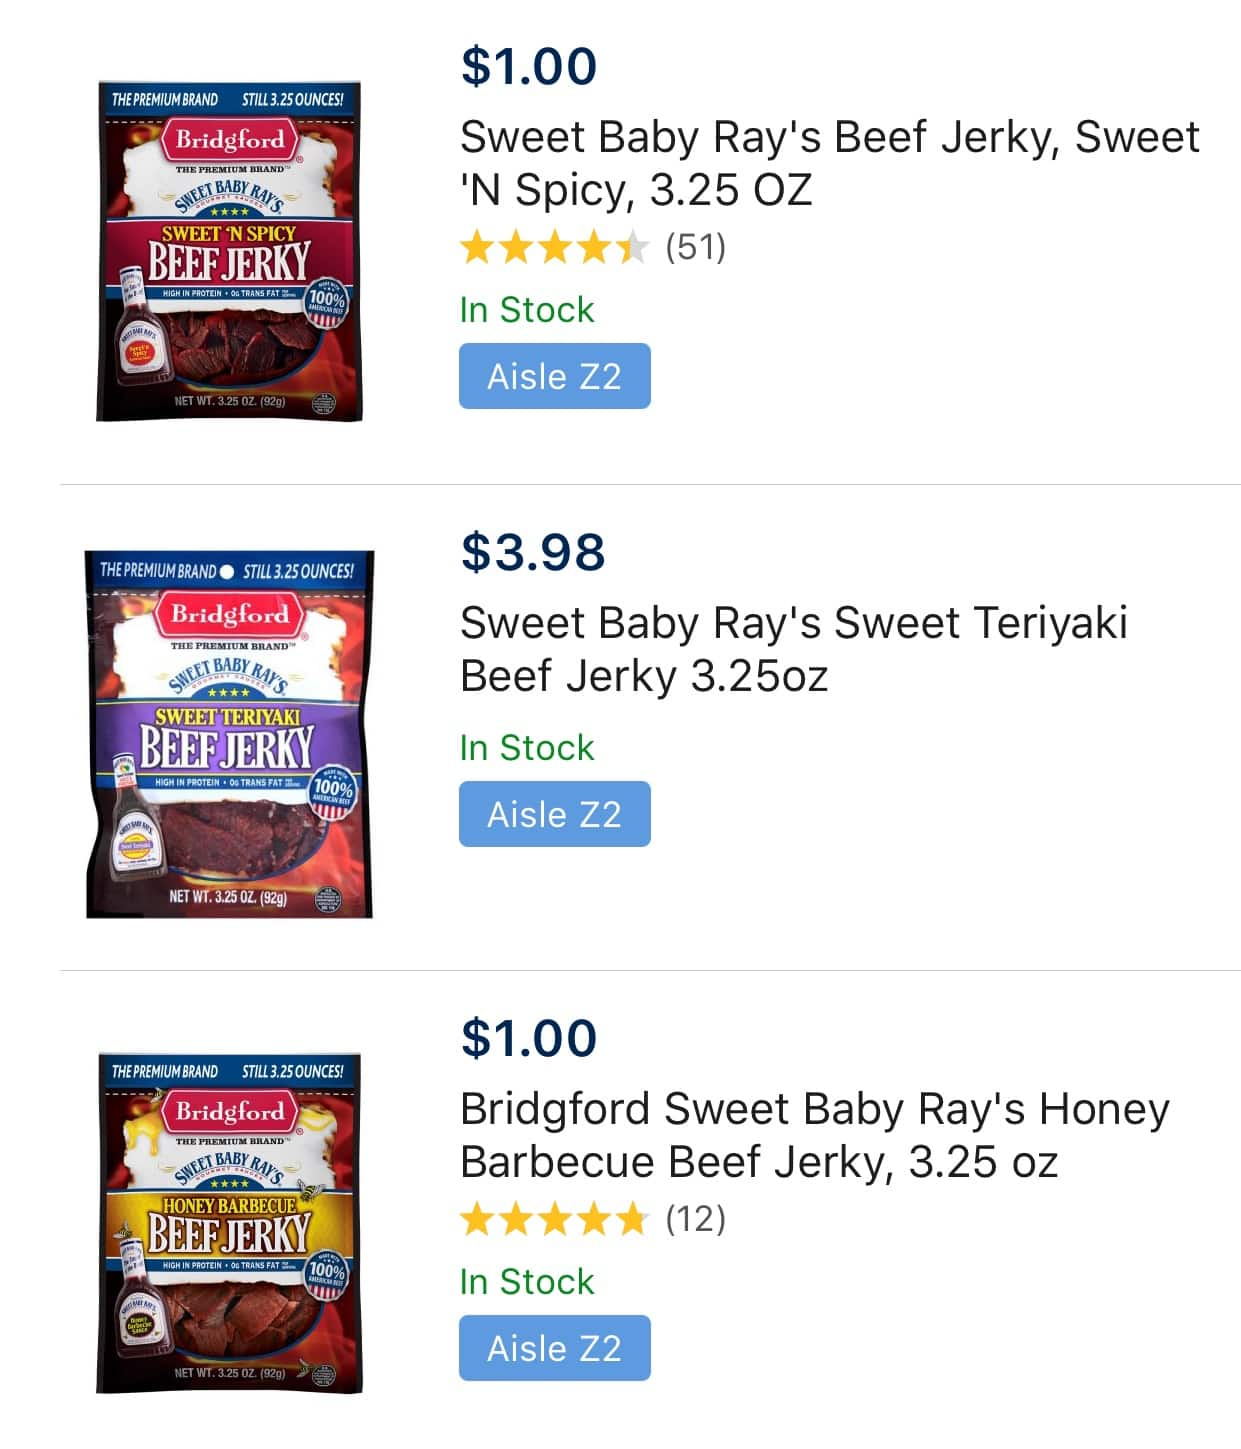 Sweet Baby Ray's beef jerky (Honey BBQ, Sweet&Spicy) 3.25oz for $1 - $1.50 at some B&M Walmart locations. YMMV